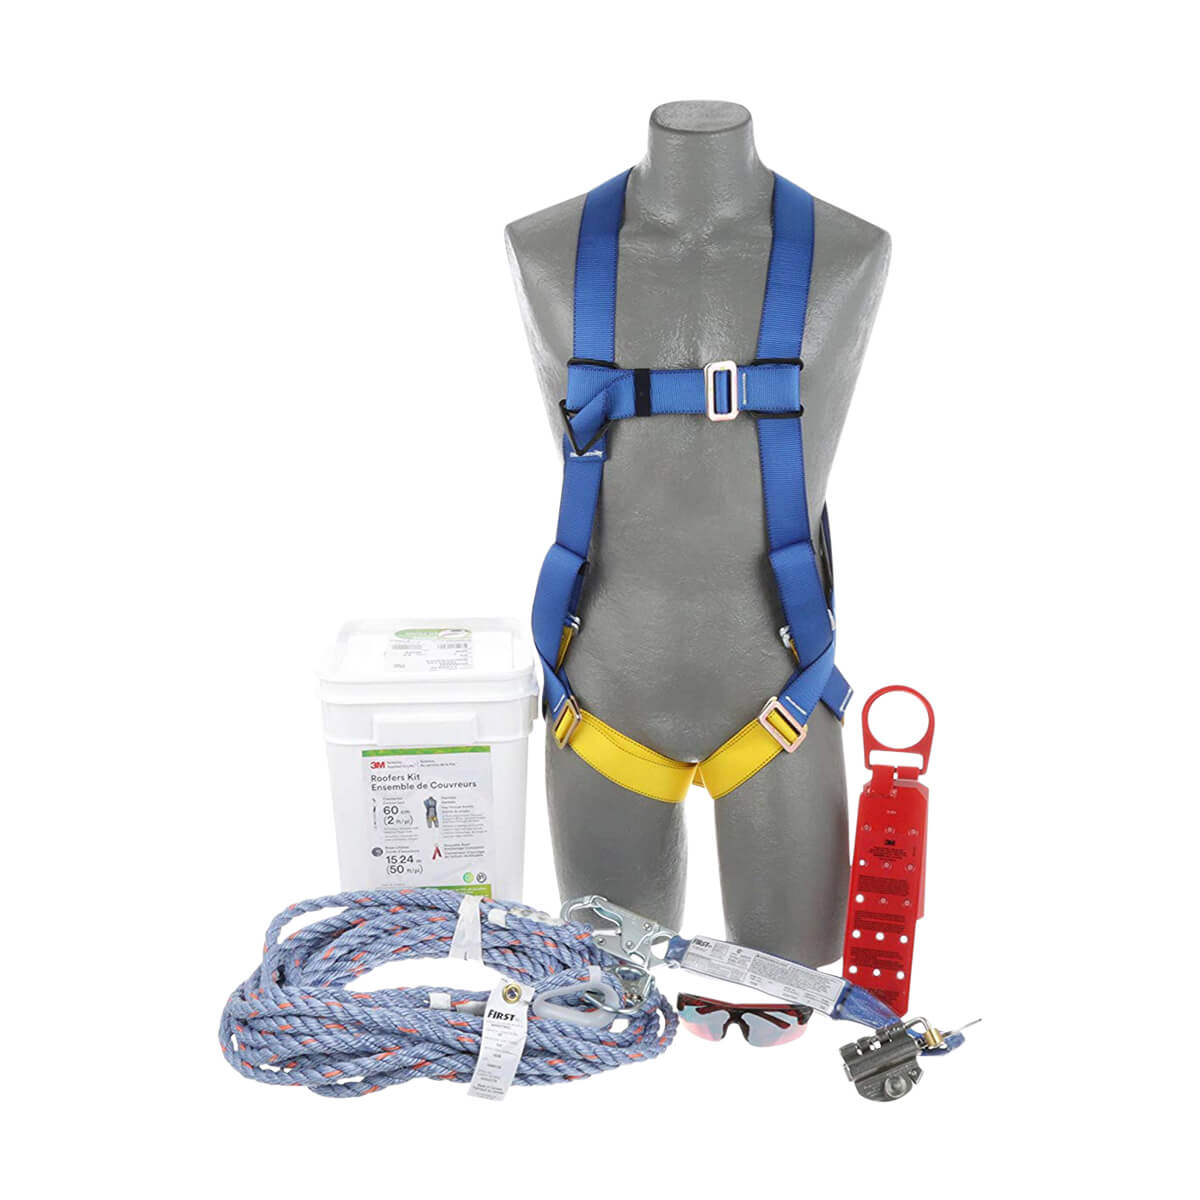 3M Roofer's Kit